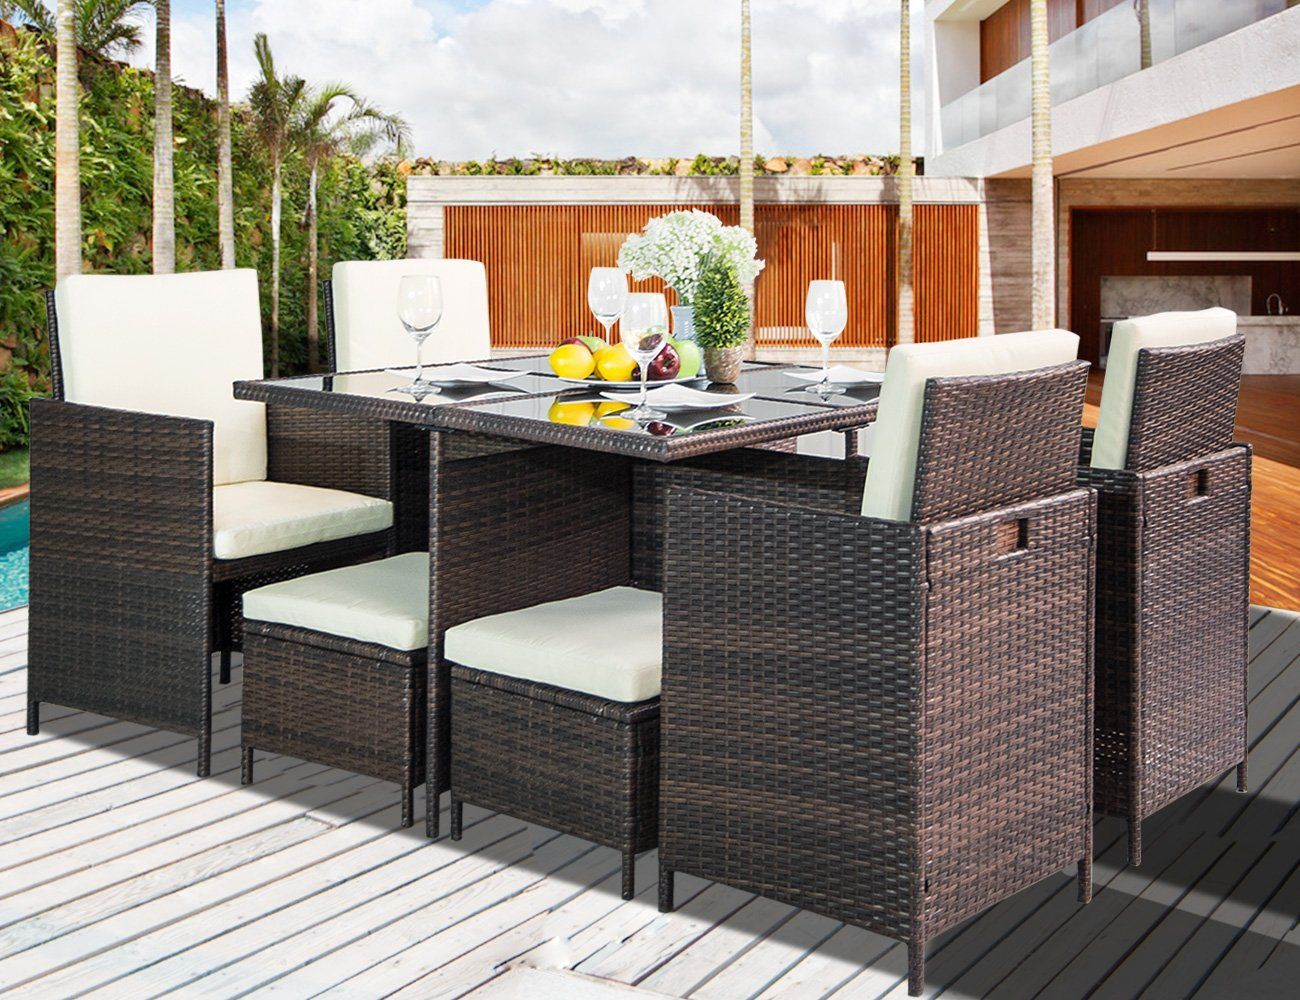 This Outdoor Rattan Wicker Patio Dining Table Set Has Cushions For More Comfort The Fo With Images Outdoor Patio Furniture Sets Wicker Dining Set Outdoor Dining Furniture